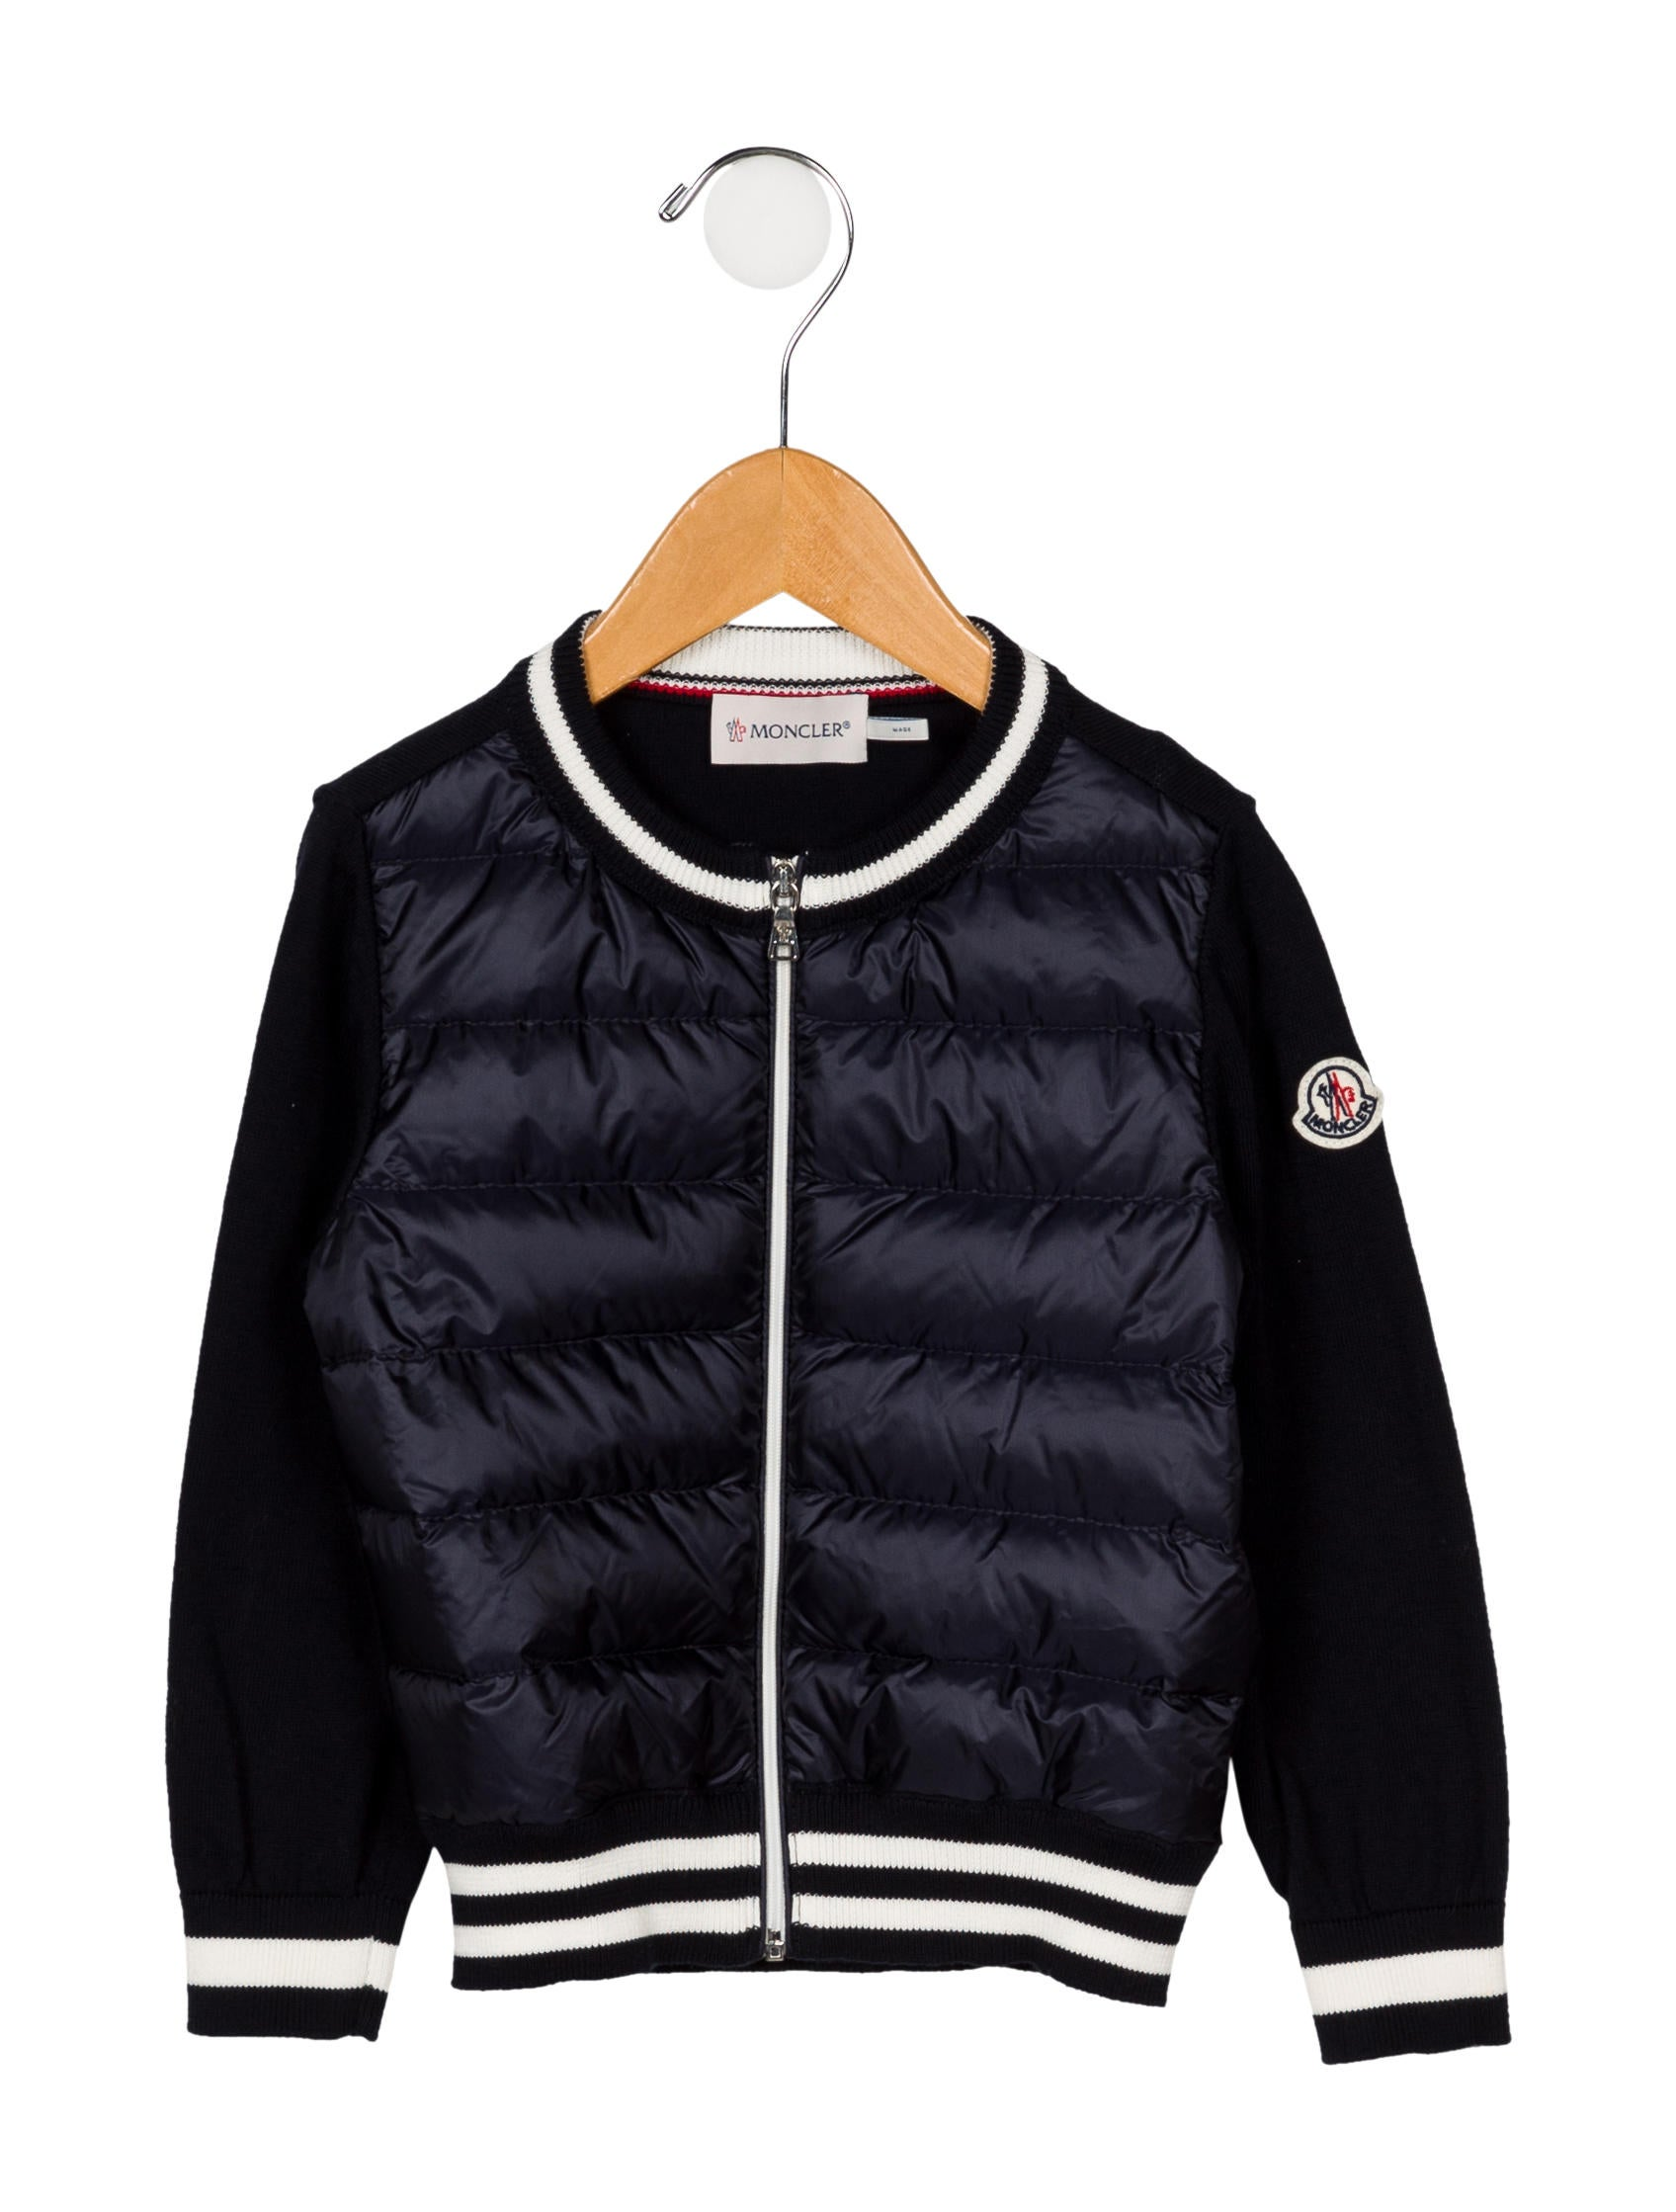 Tricot Realreal Moncler Moc35167The Boys Maglione Cardigan Boys' TFc3ulJK1